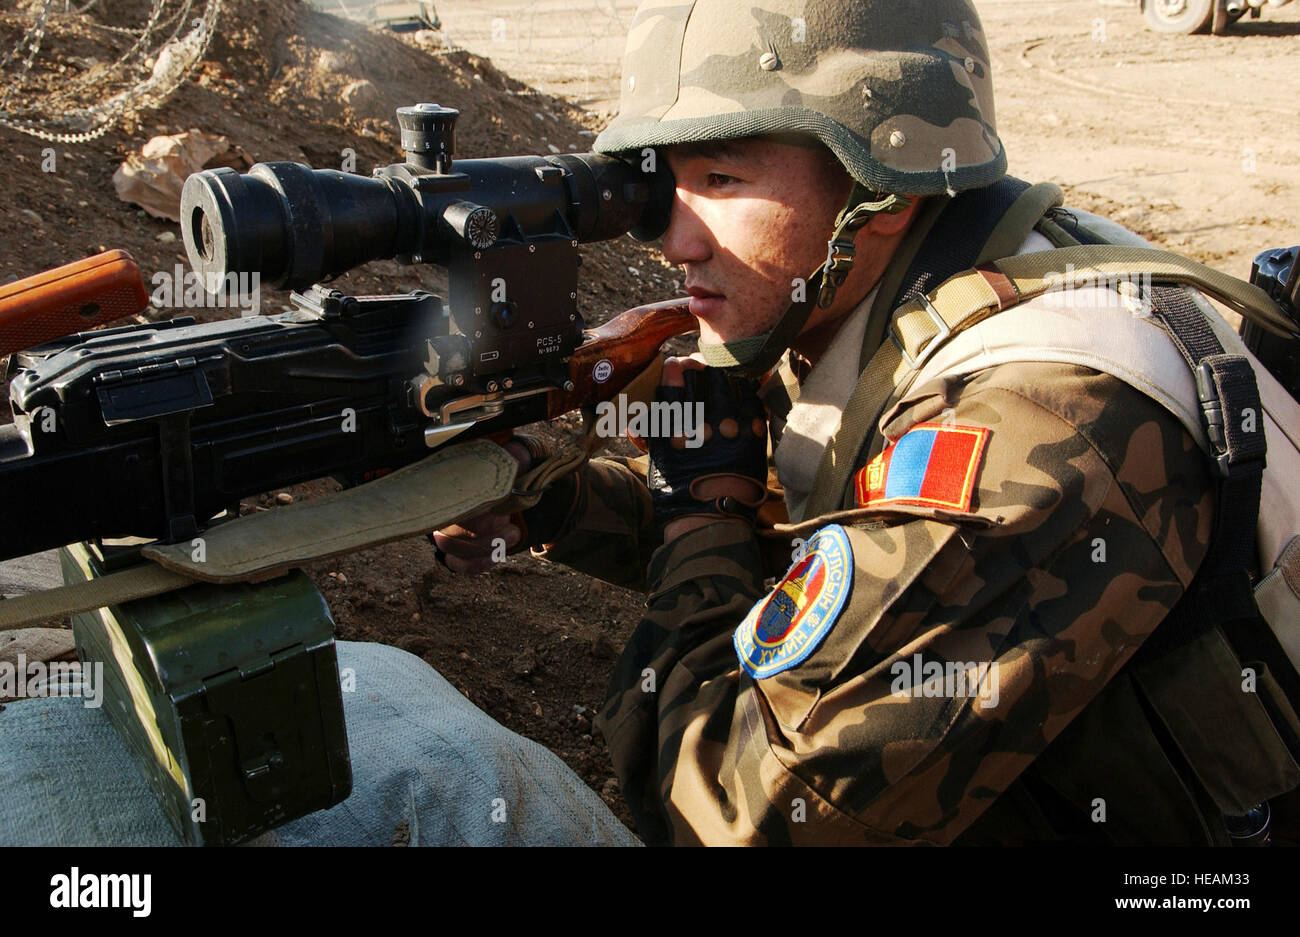 A Mongolian Quick Reactionary Force (QRF) Army Soldier scans the area with his AKMS 7.62 Rifle utilizing a bunker - Stock Image